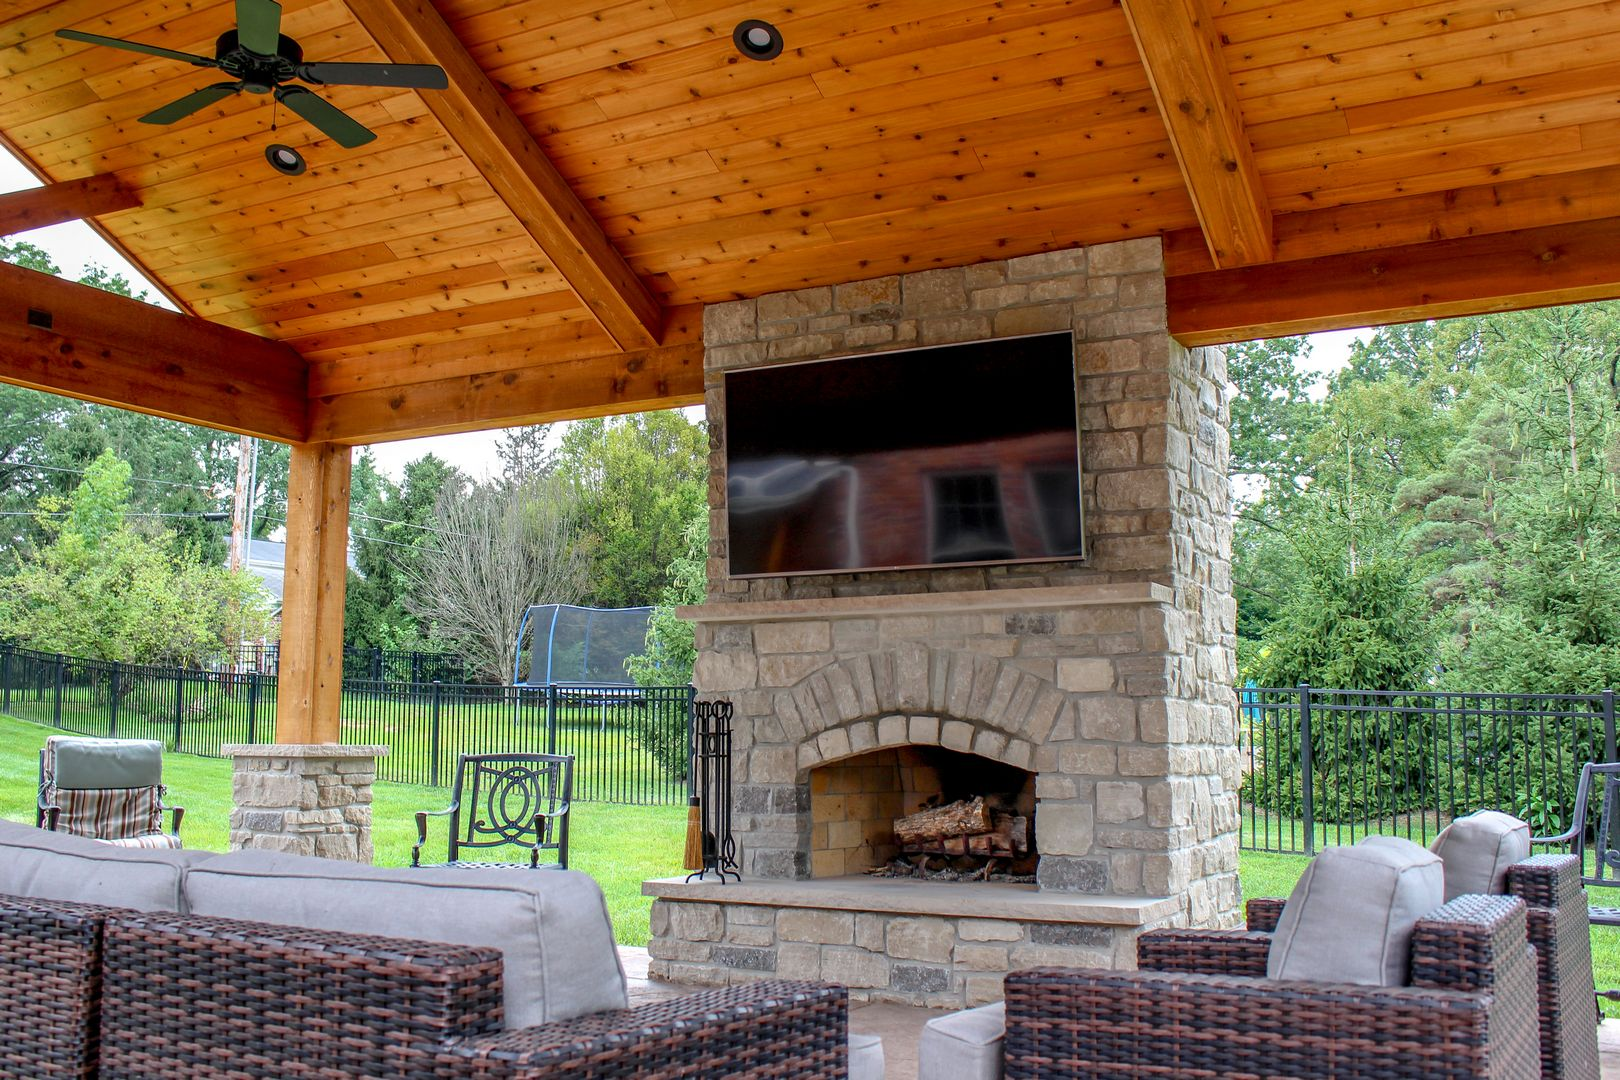 best outdoor room with a TV to enjoy the sounds of nature while watching your favorite sport or show